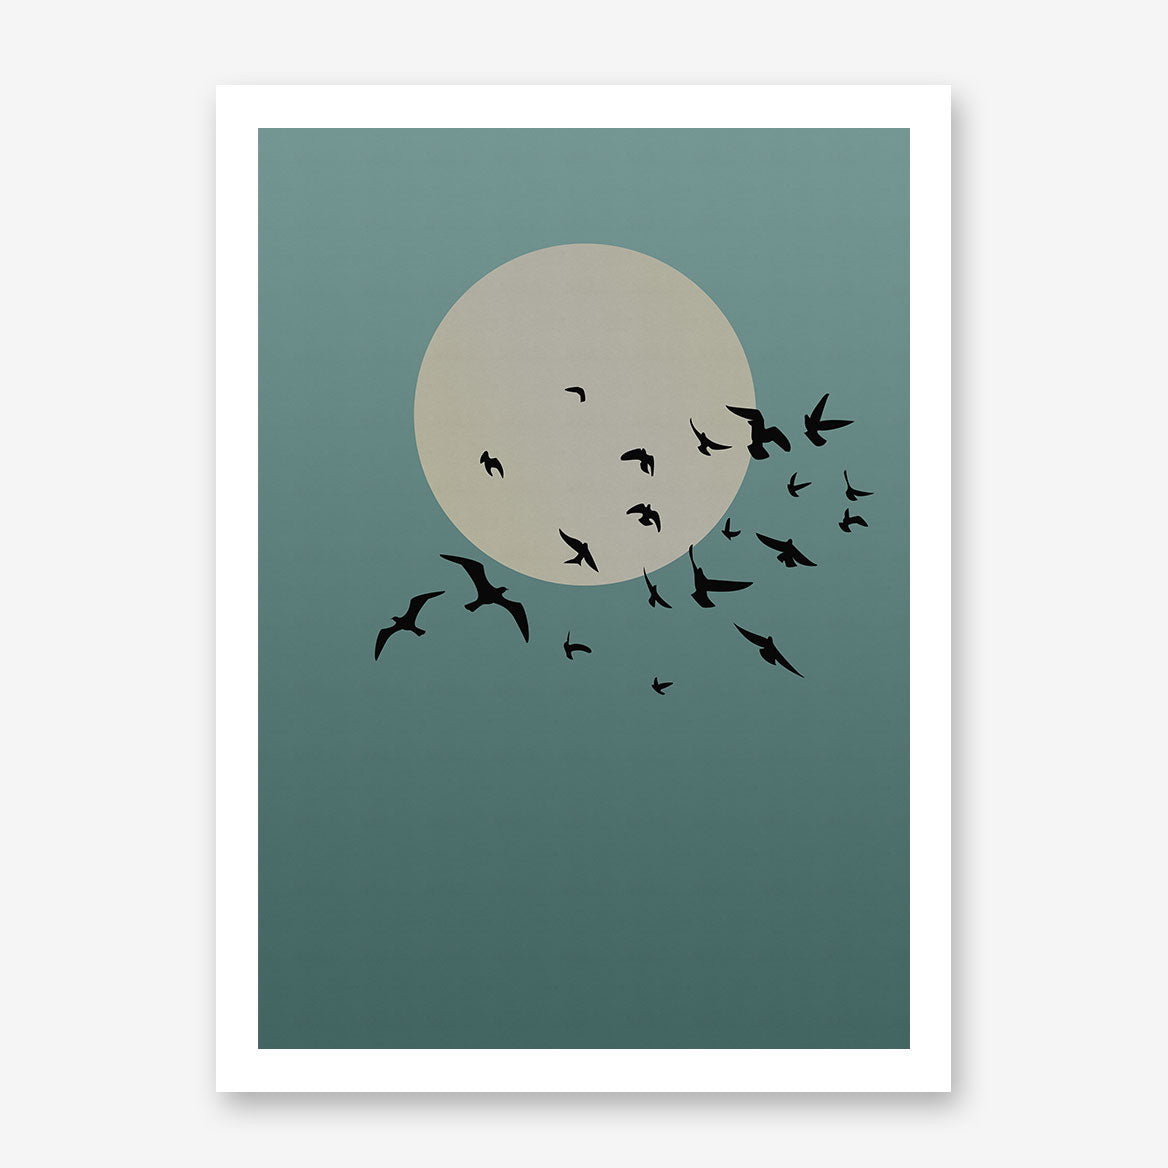 Poster print with grey sun and black birds, on blue textured paper effect background